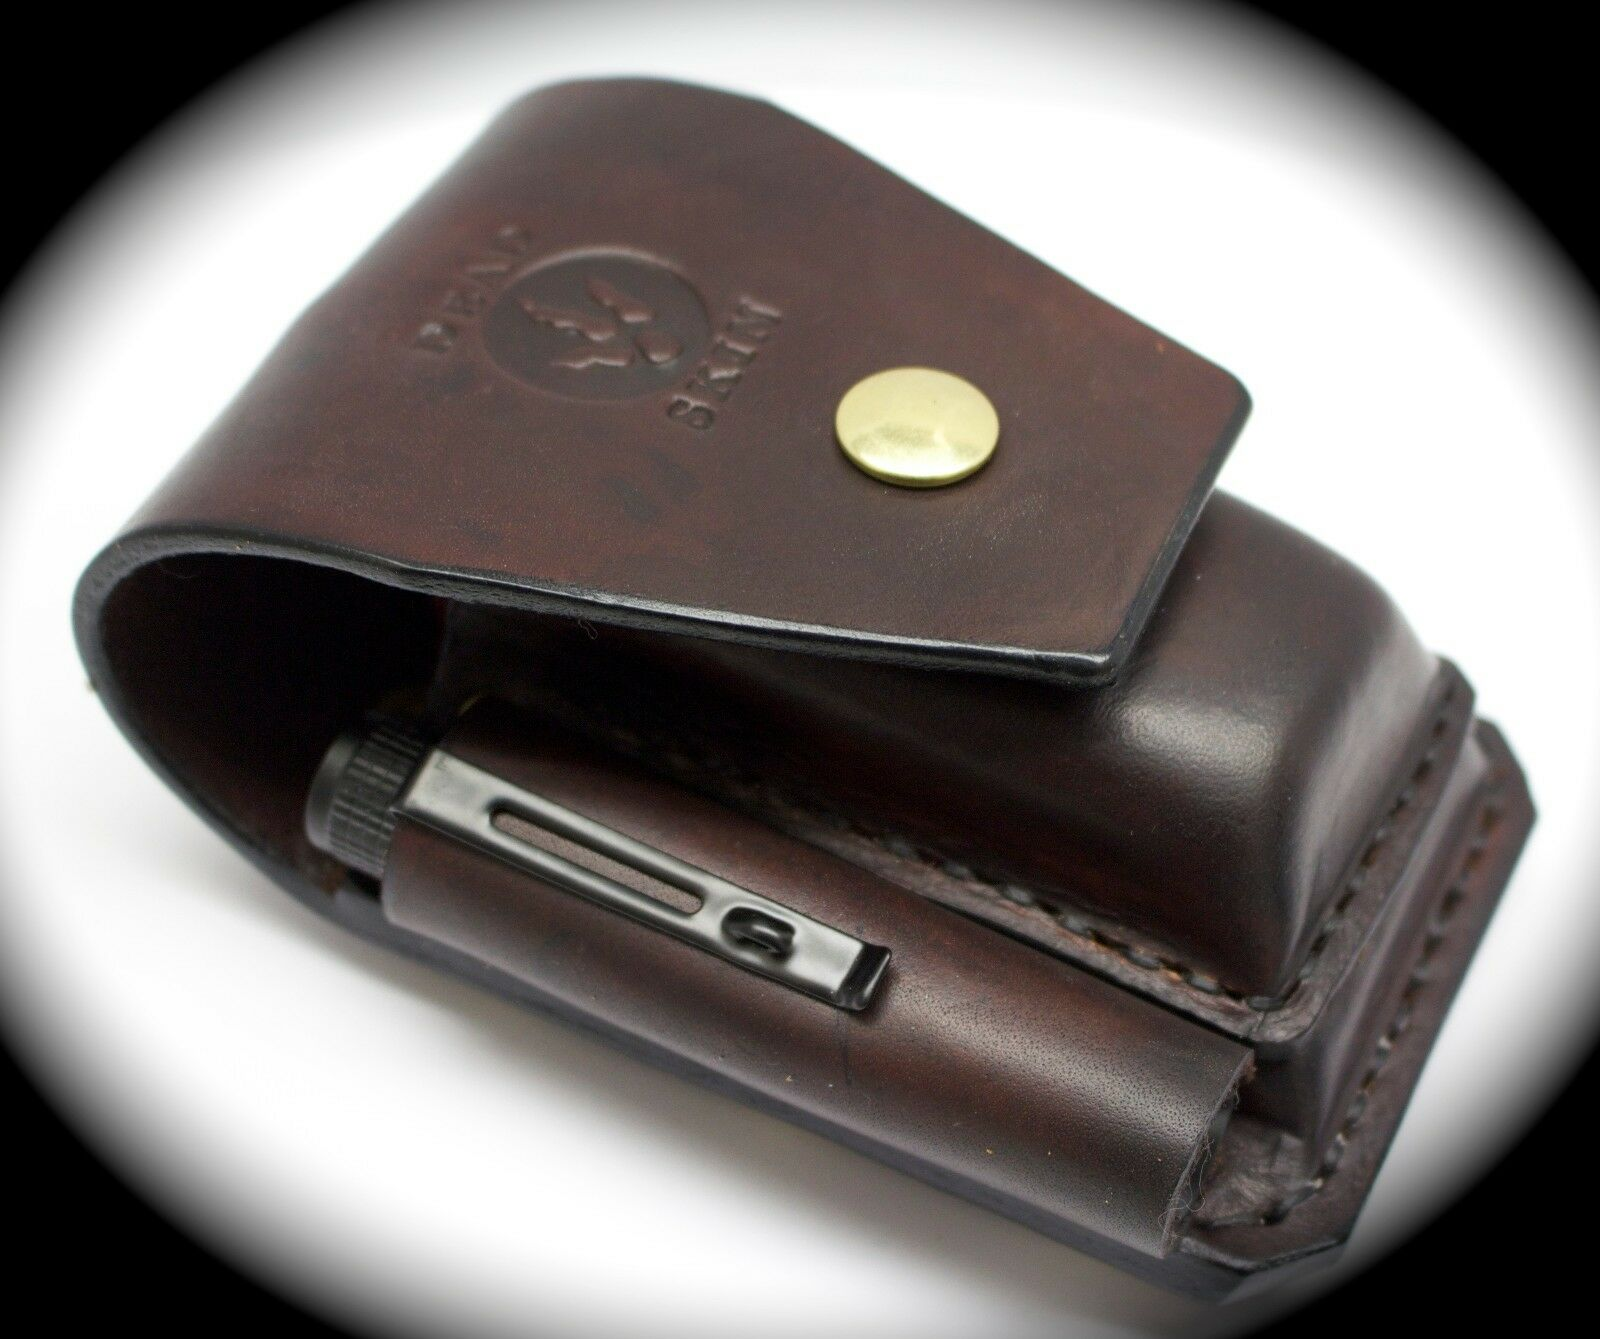 Heavy duty leather  case sheath pouch FOR leatherman multitools bit kits torch  limited edition